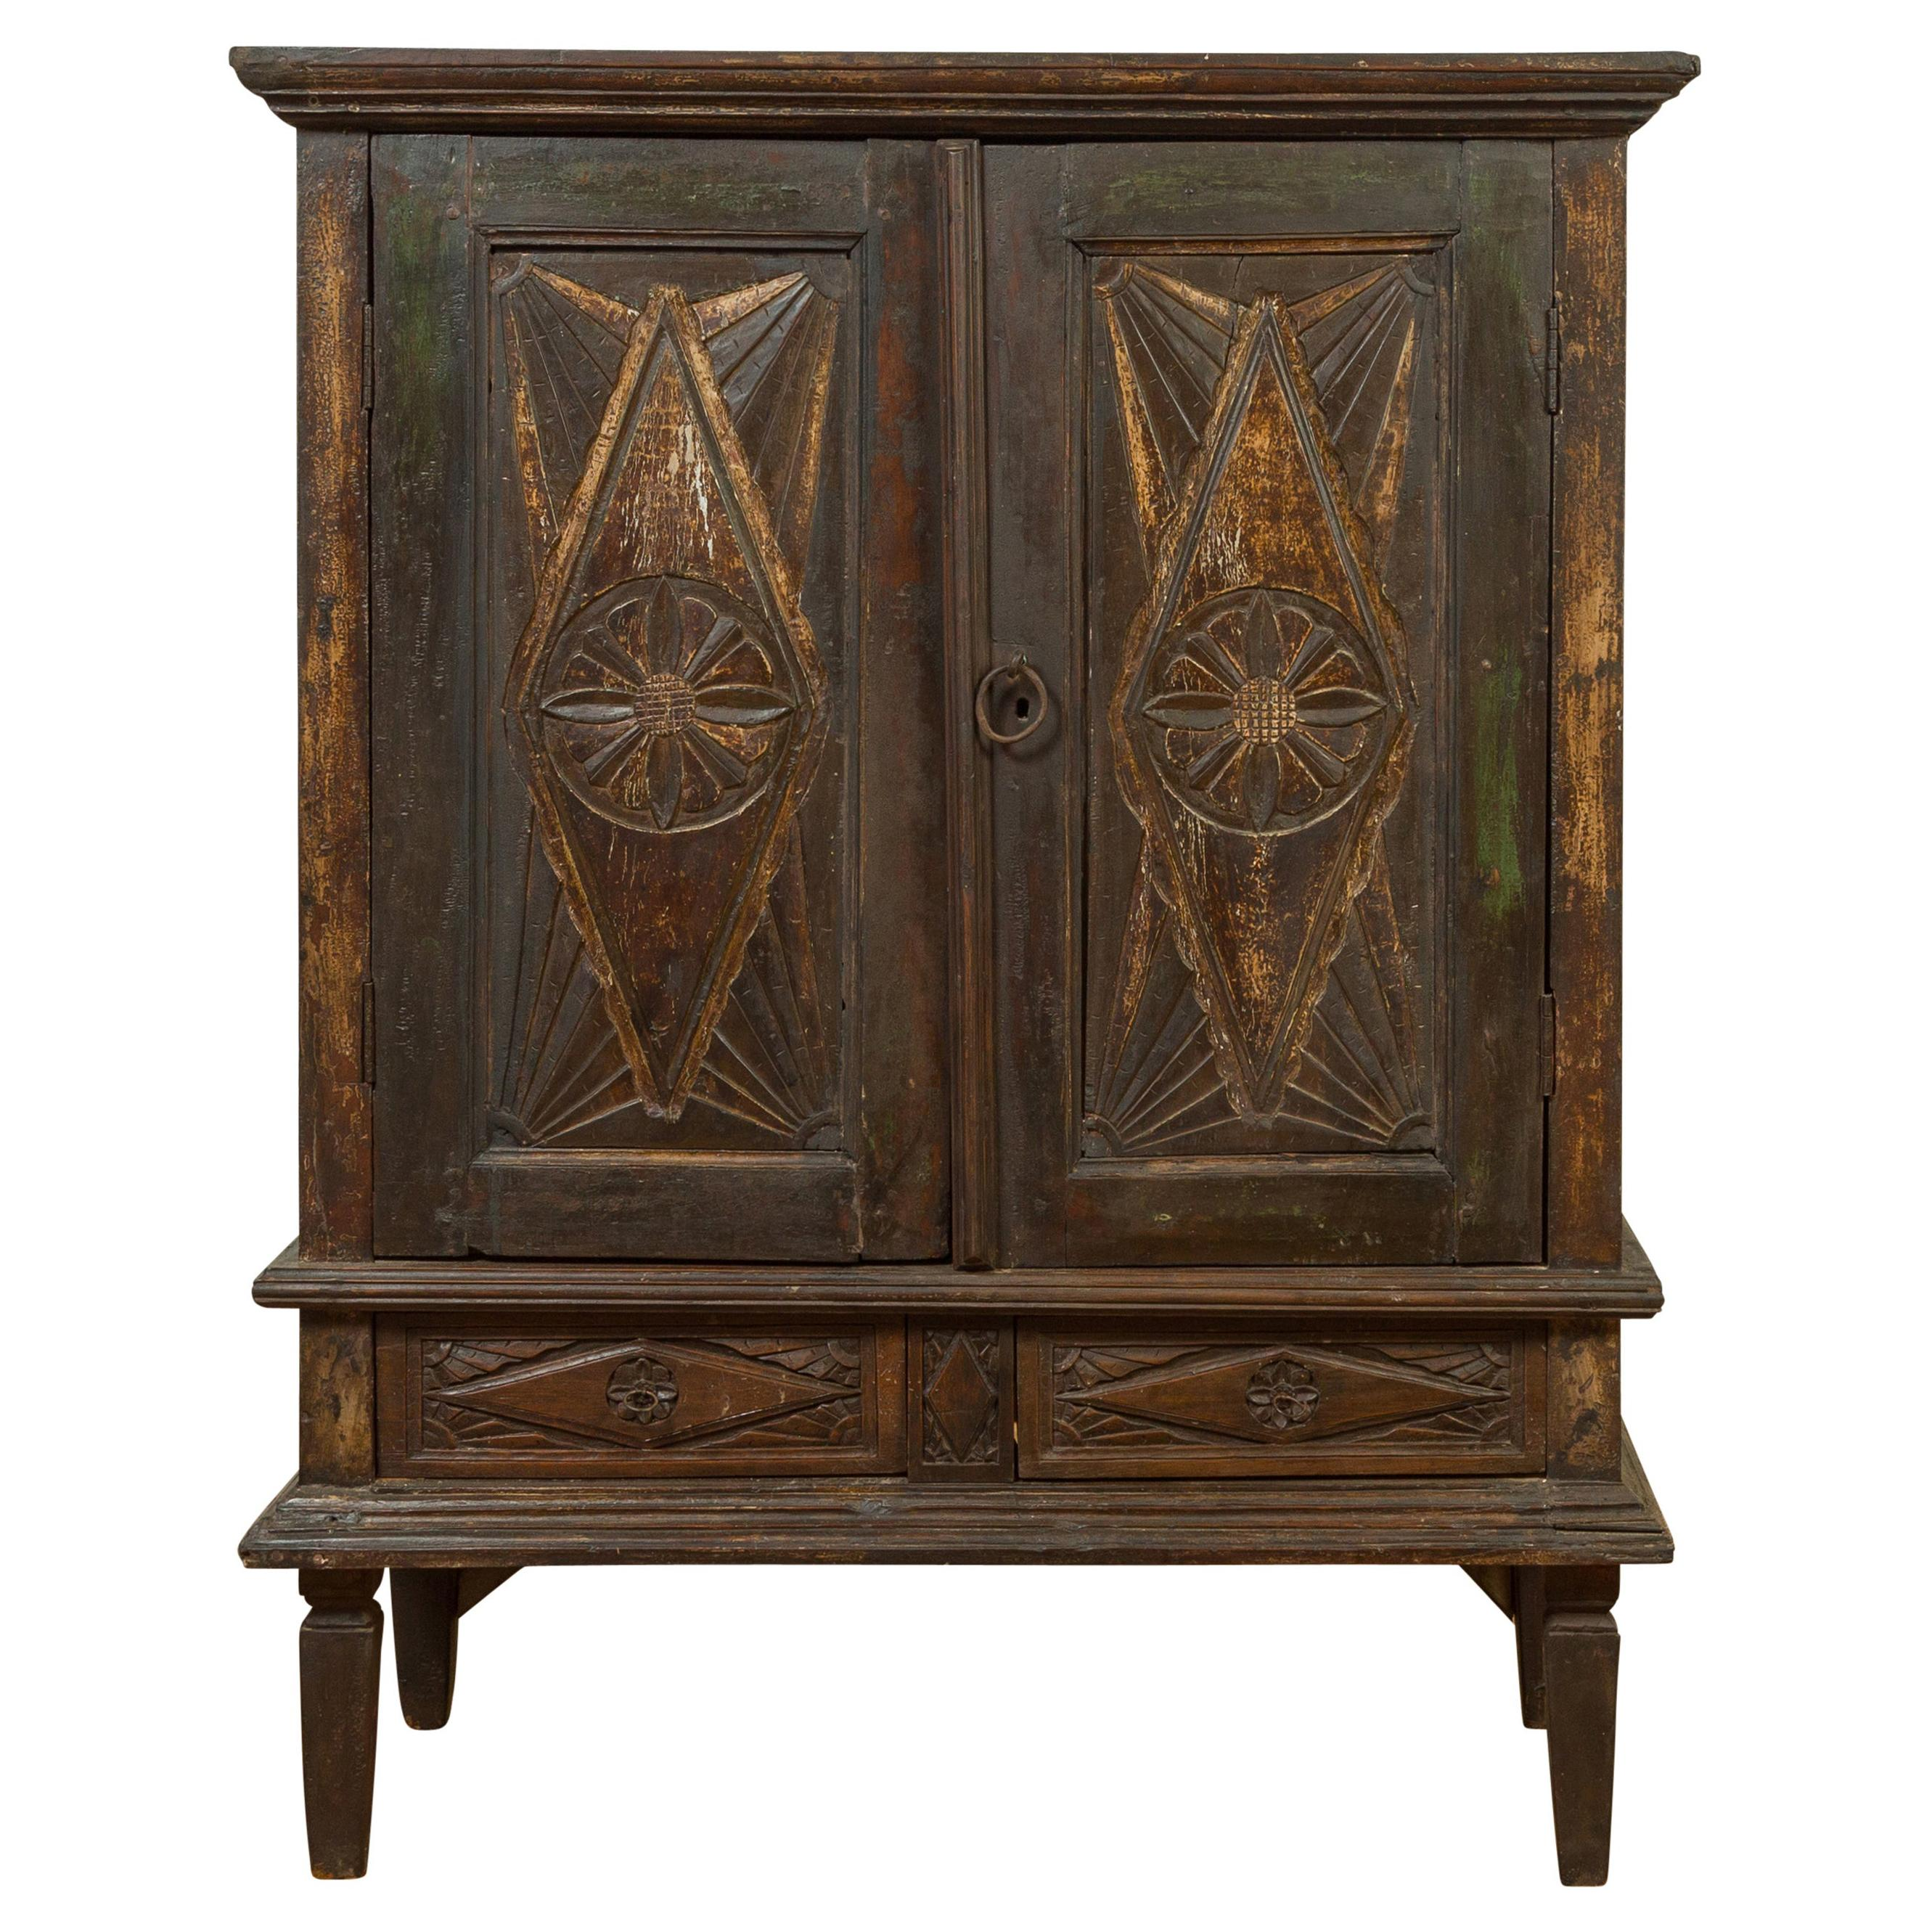 19th Century Indonesian Wooden Cabinet with Doors, Drawers and Carved Medallions